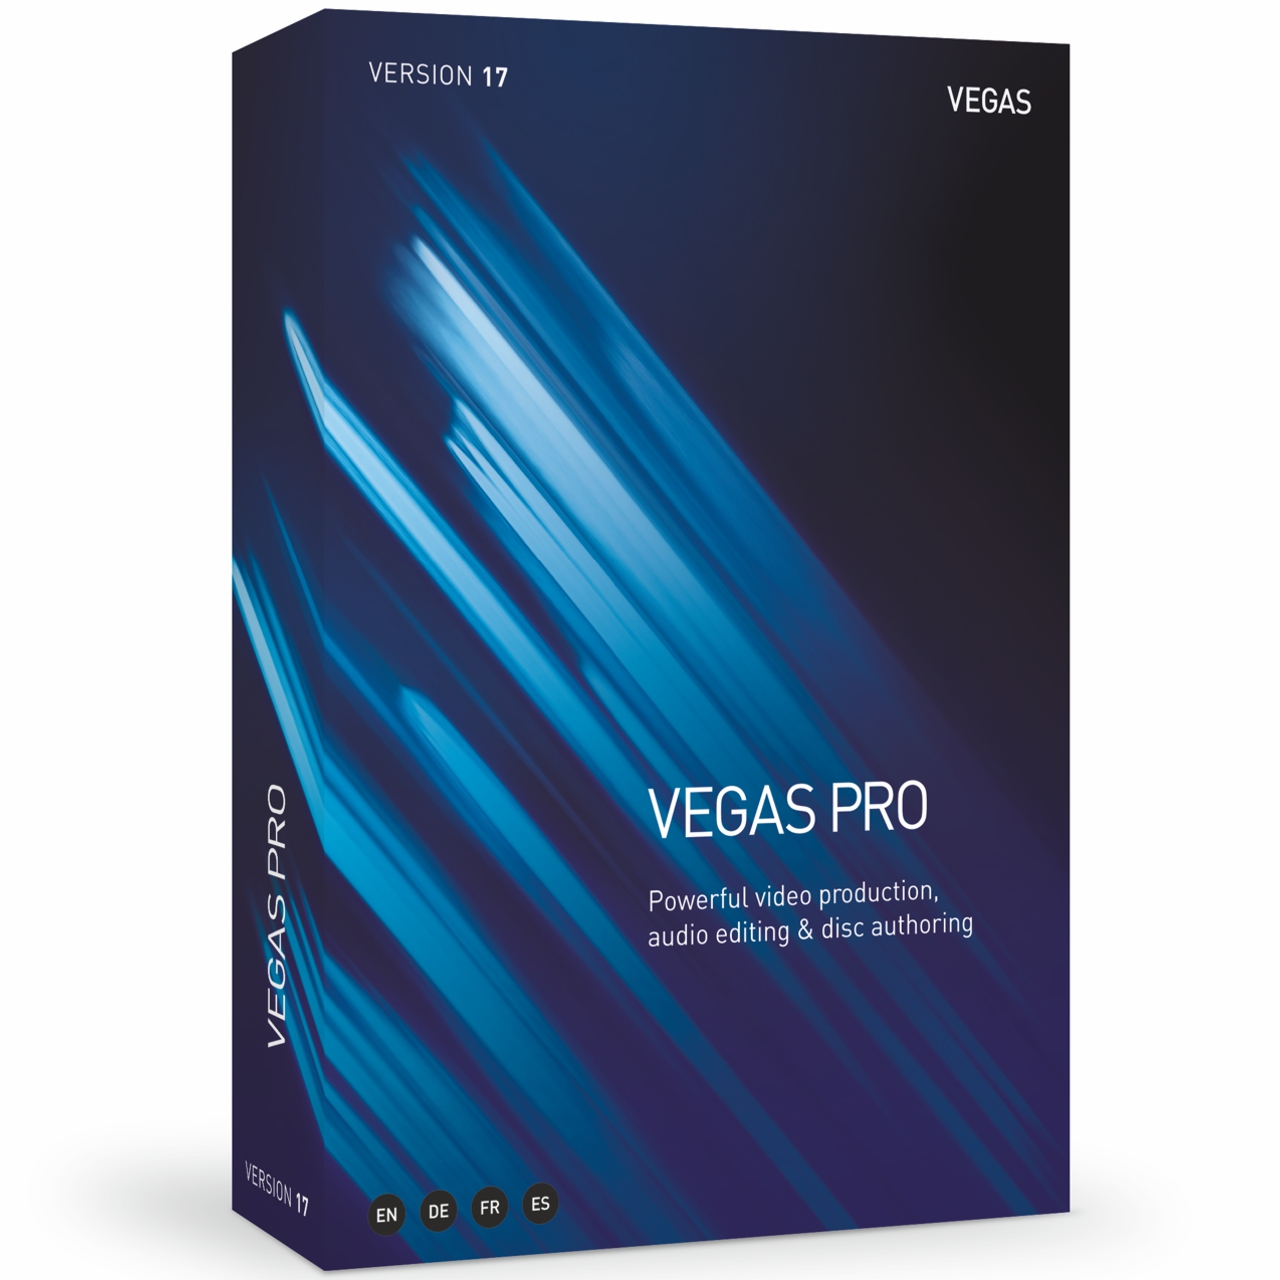 Sony Vegas Pro 20.0 Crack With Torrent Version Free Full Download 2022